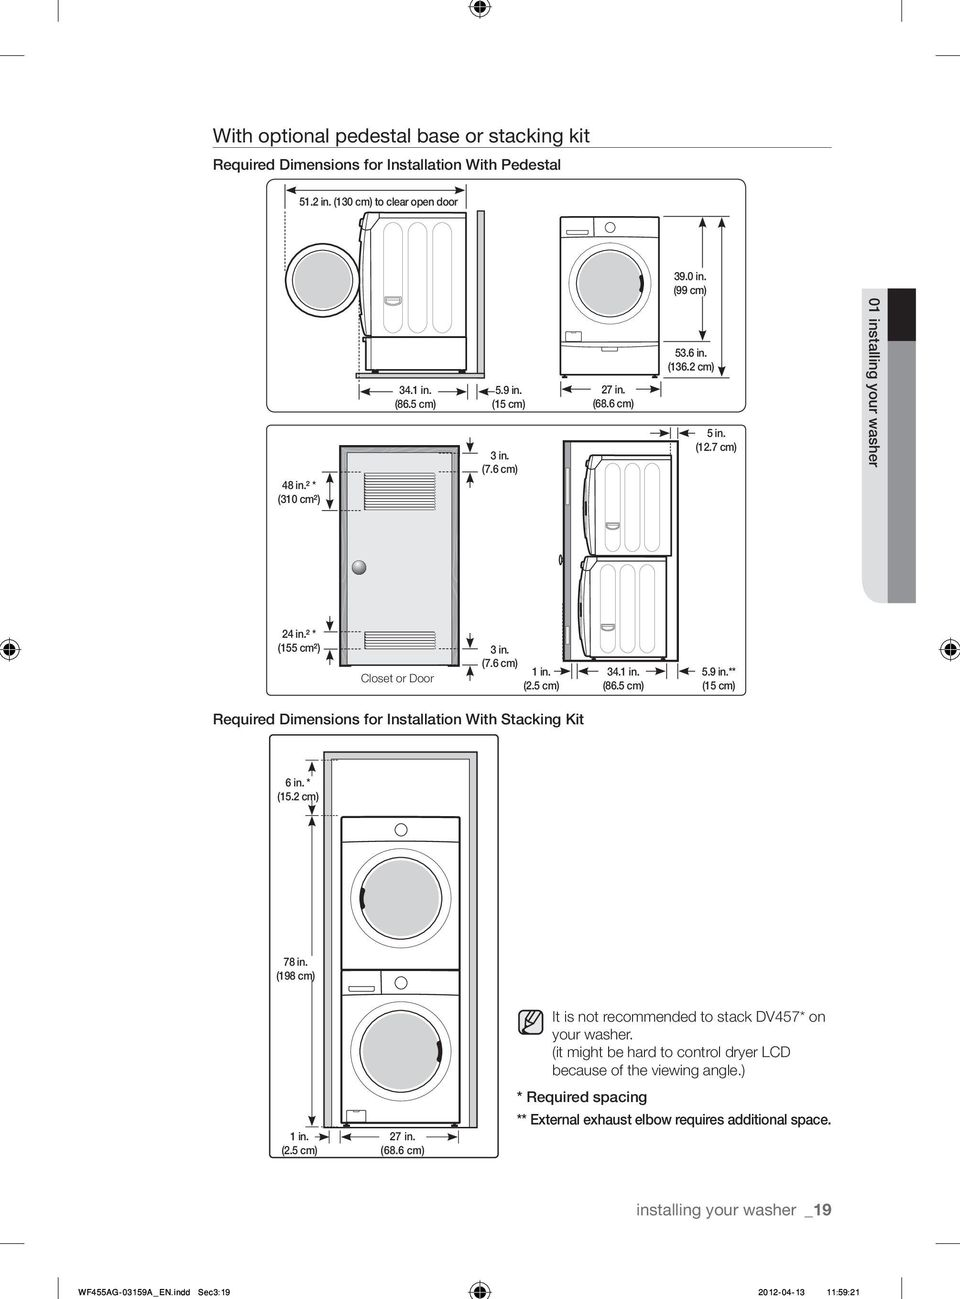 Closet or Door (2.5 cm) Required Dimensions for Installation With Stacking Kit 34.1 in. (86.5 cm) 5.9 in.** (15 cm) 6 in. * (15.2 cm) 78 in. (198 cm) 1 in. (2.5 cm) 27 in. (68.